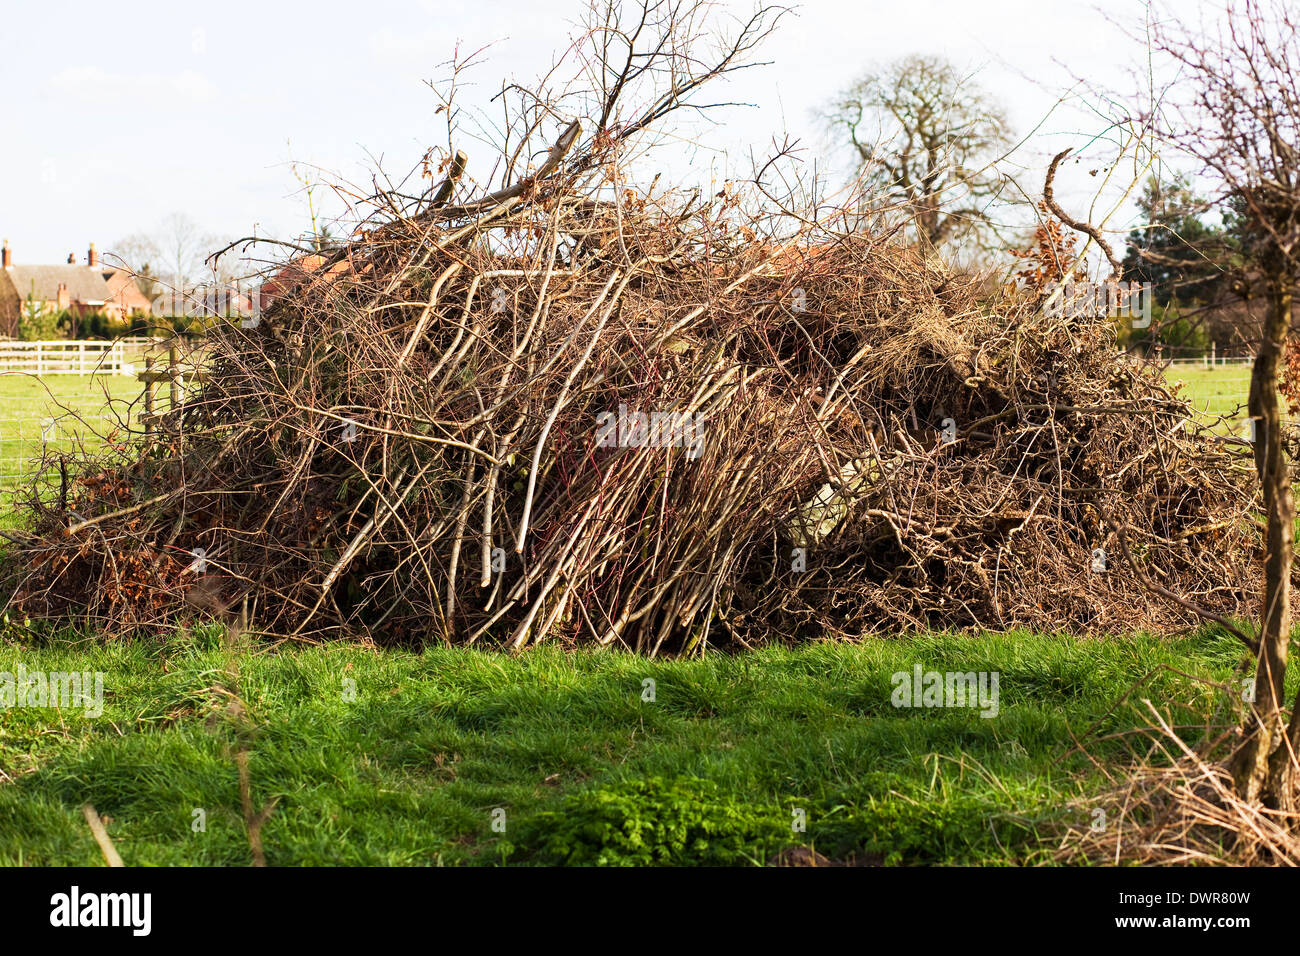 branches piled up to be burned as a bonfire - Stock Image